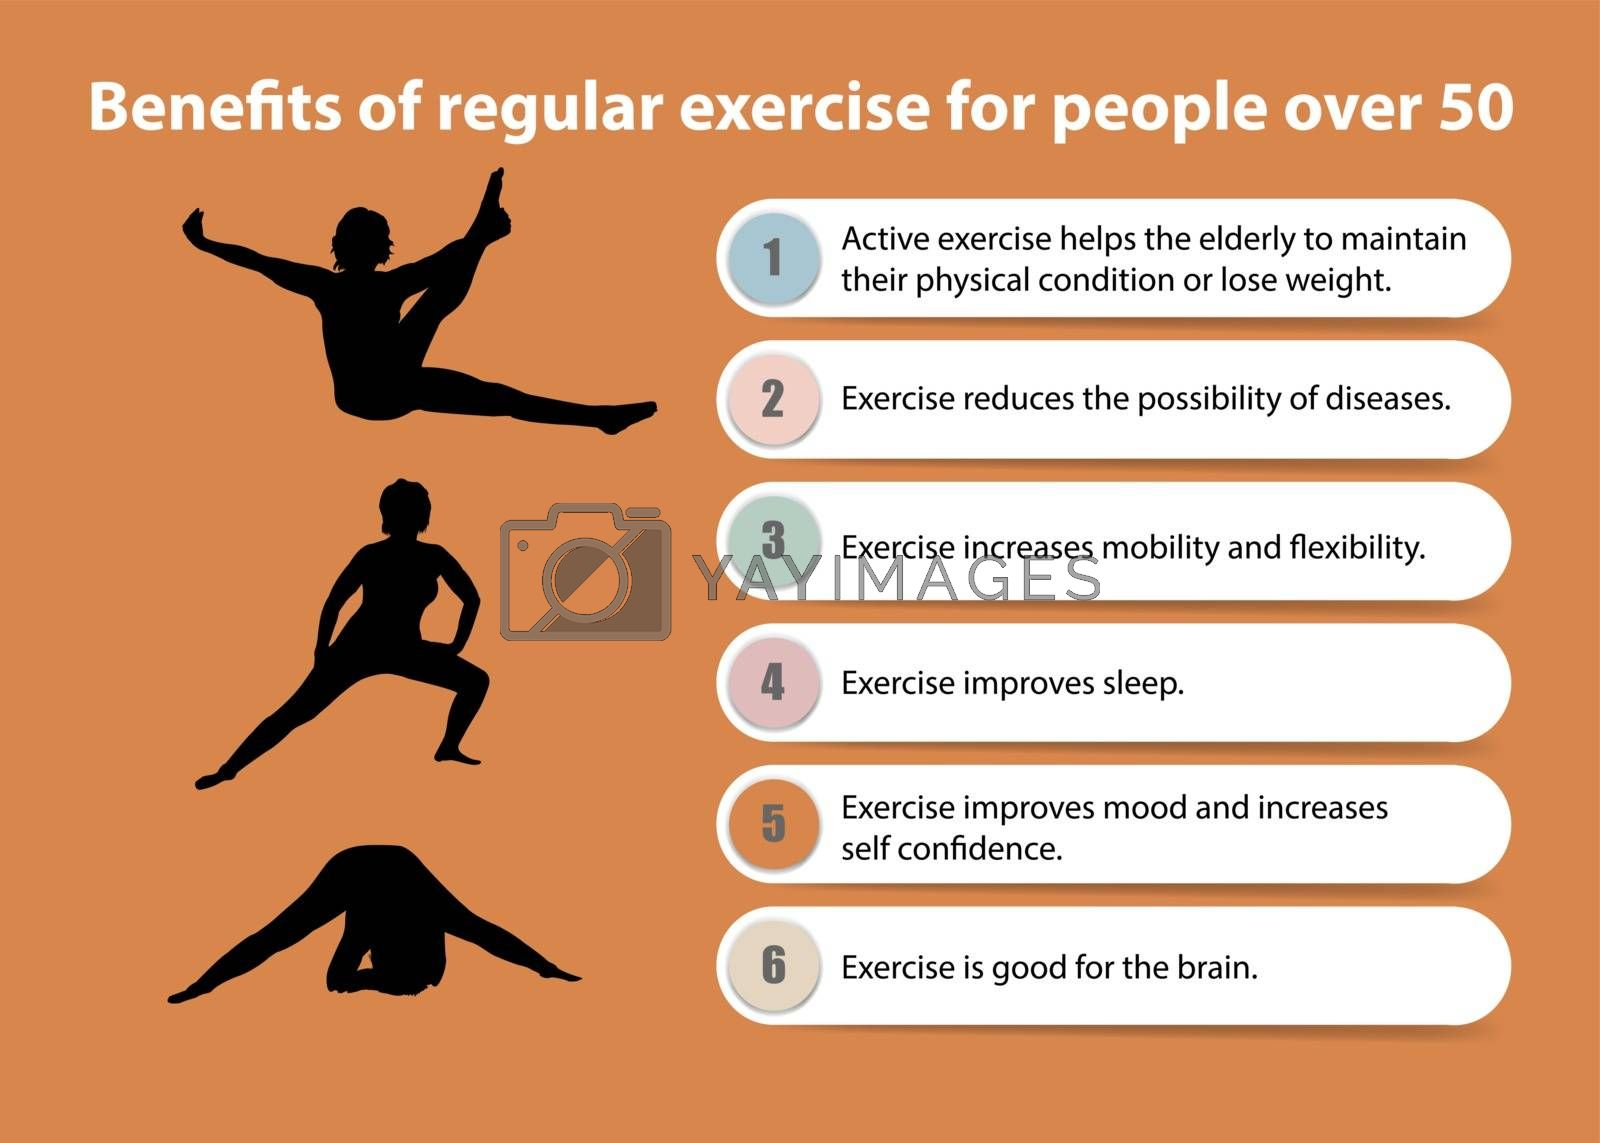 Benefits of regular exercise for people over 50 presentation by Frank11